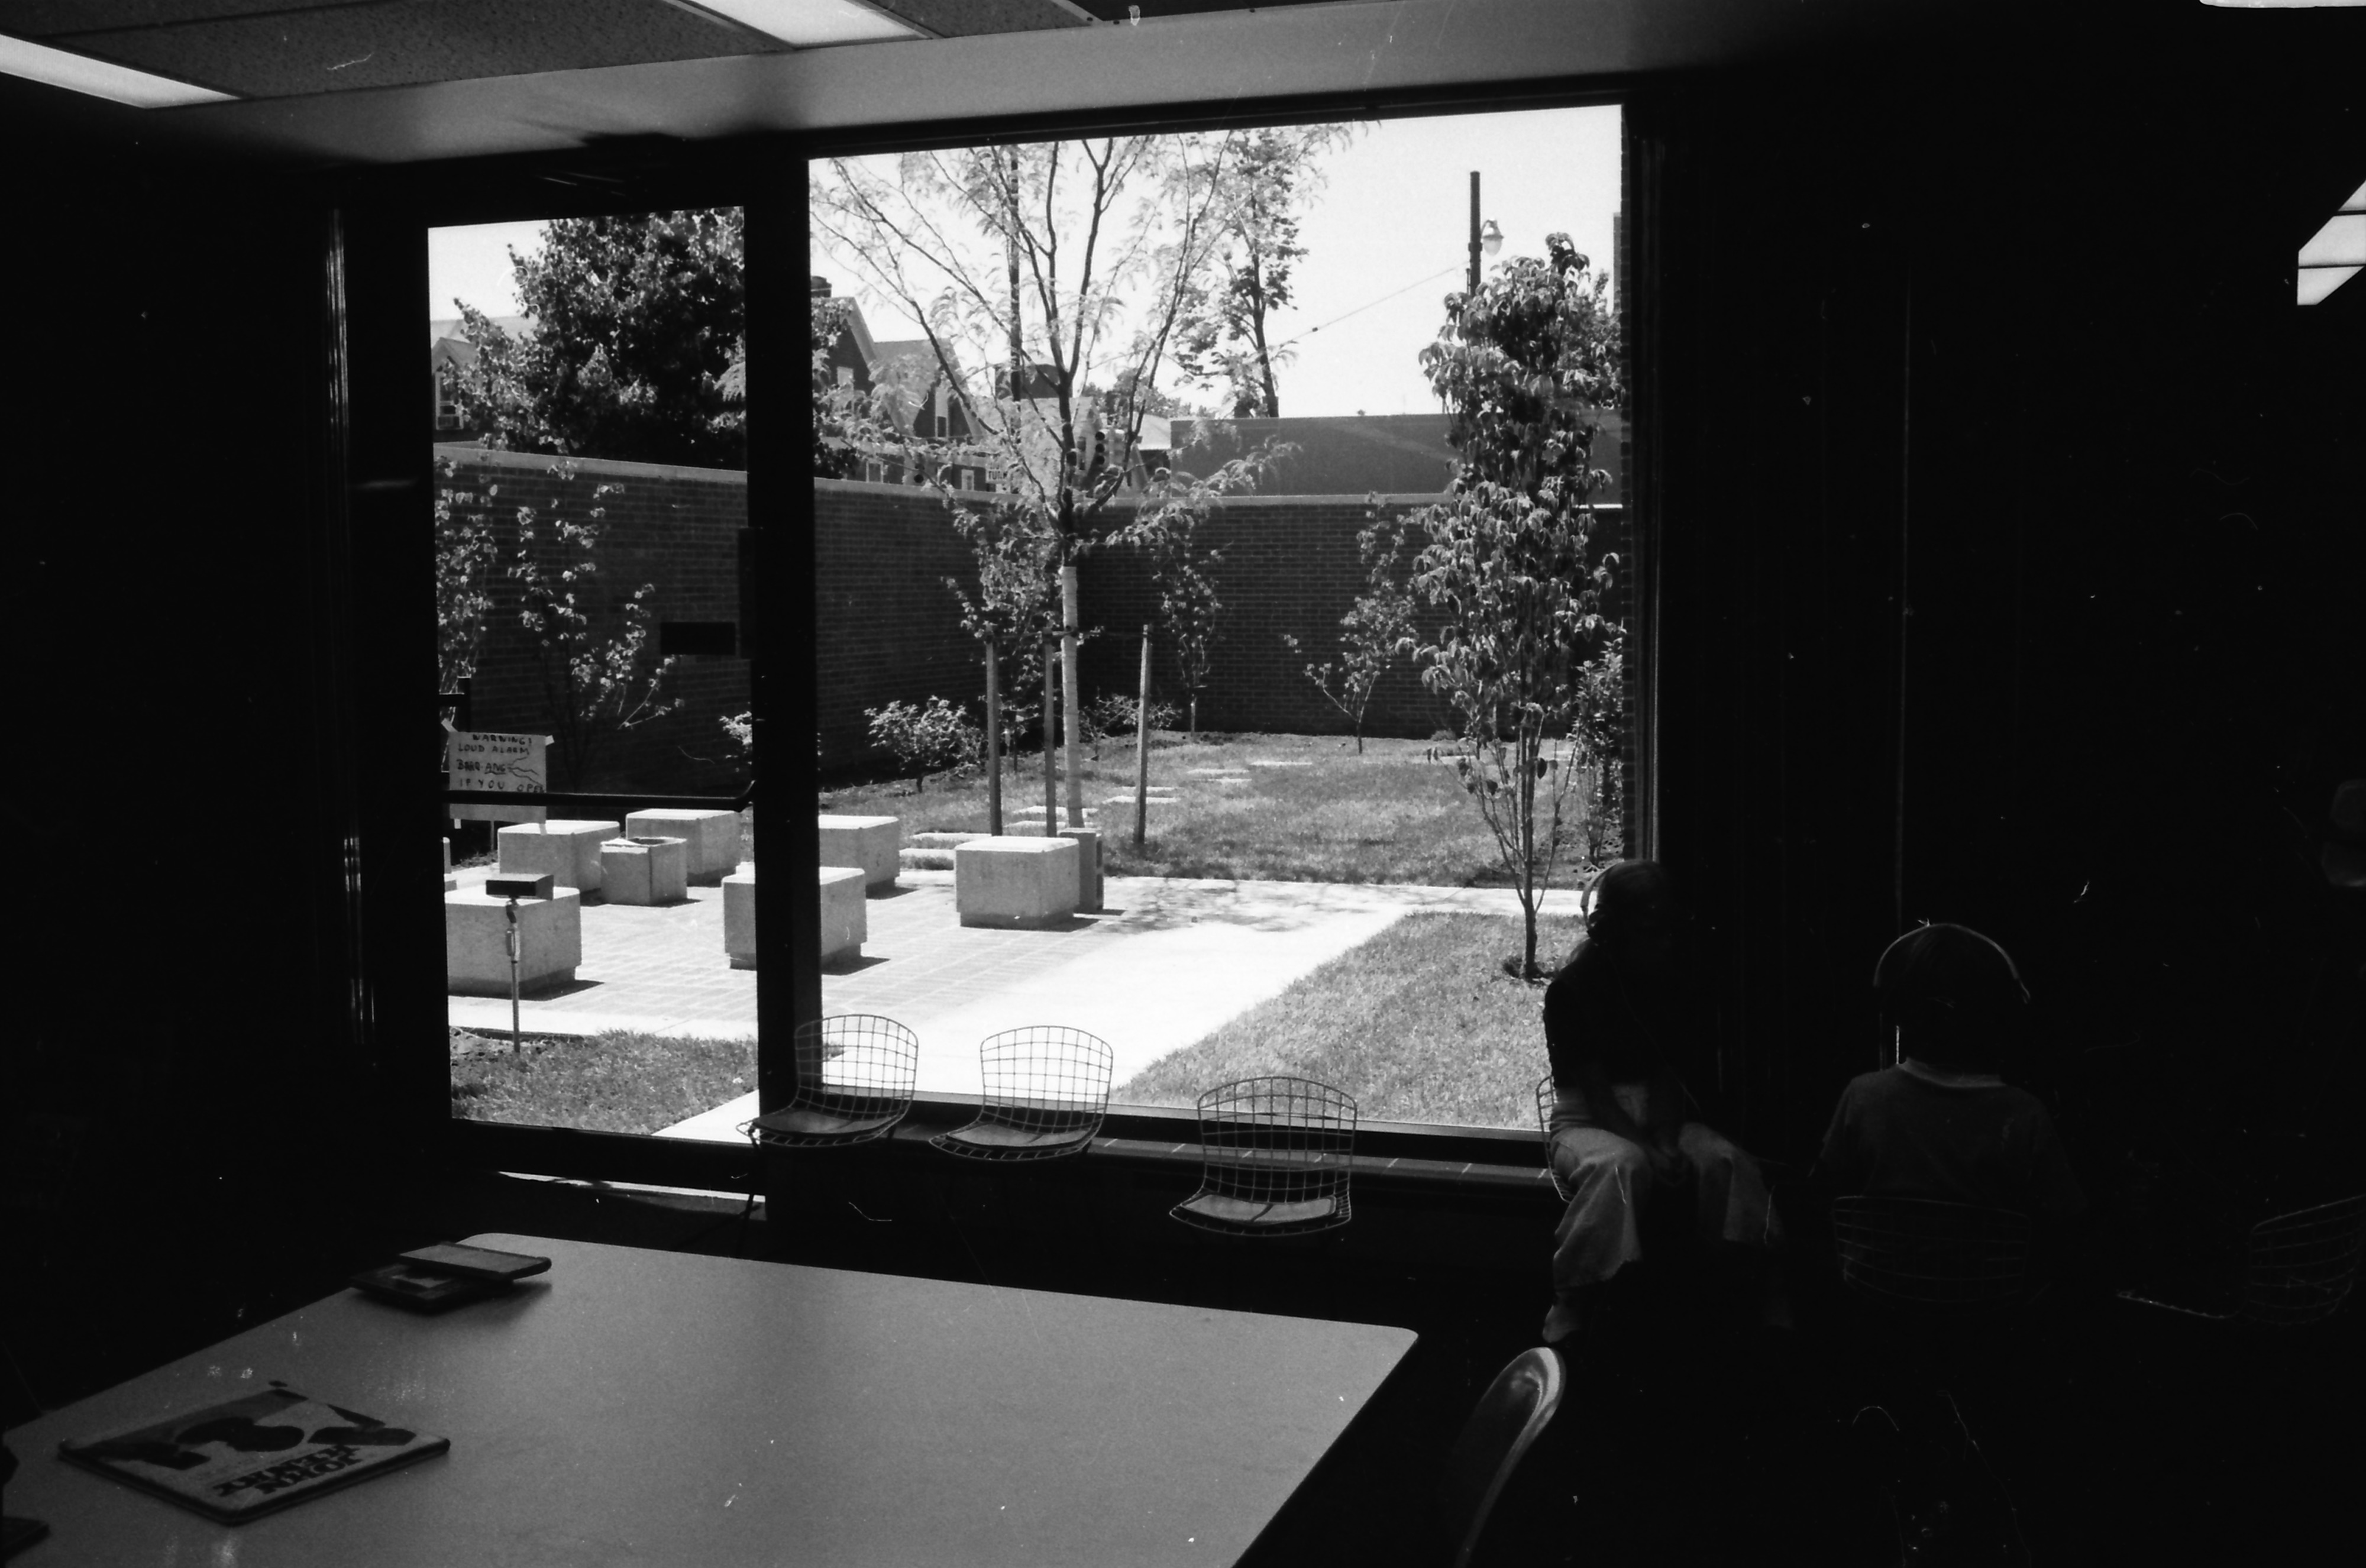 View to the Garden in the New Addition at the Ann Arbor Public Library, 343 S Fifth Ave, July 1974 image